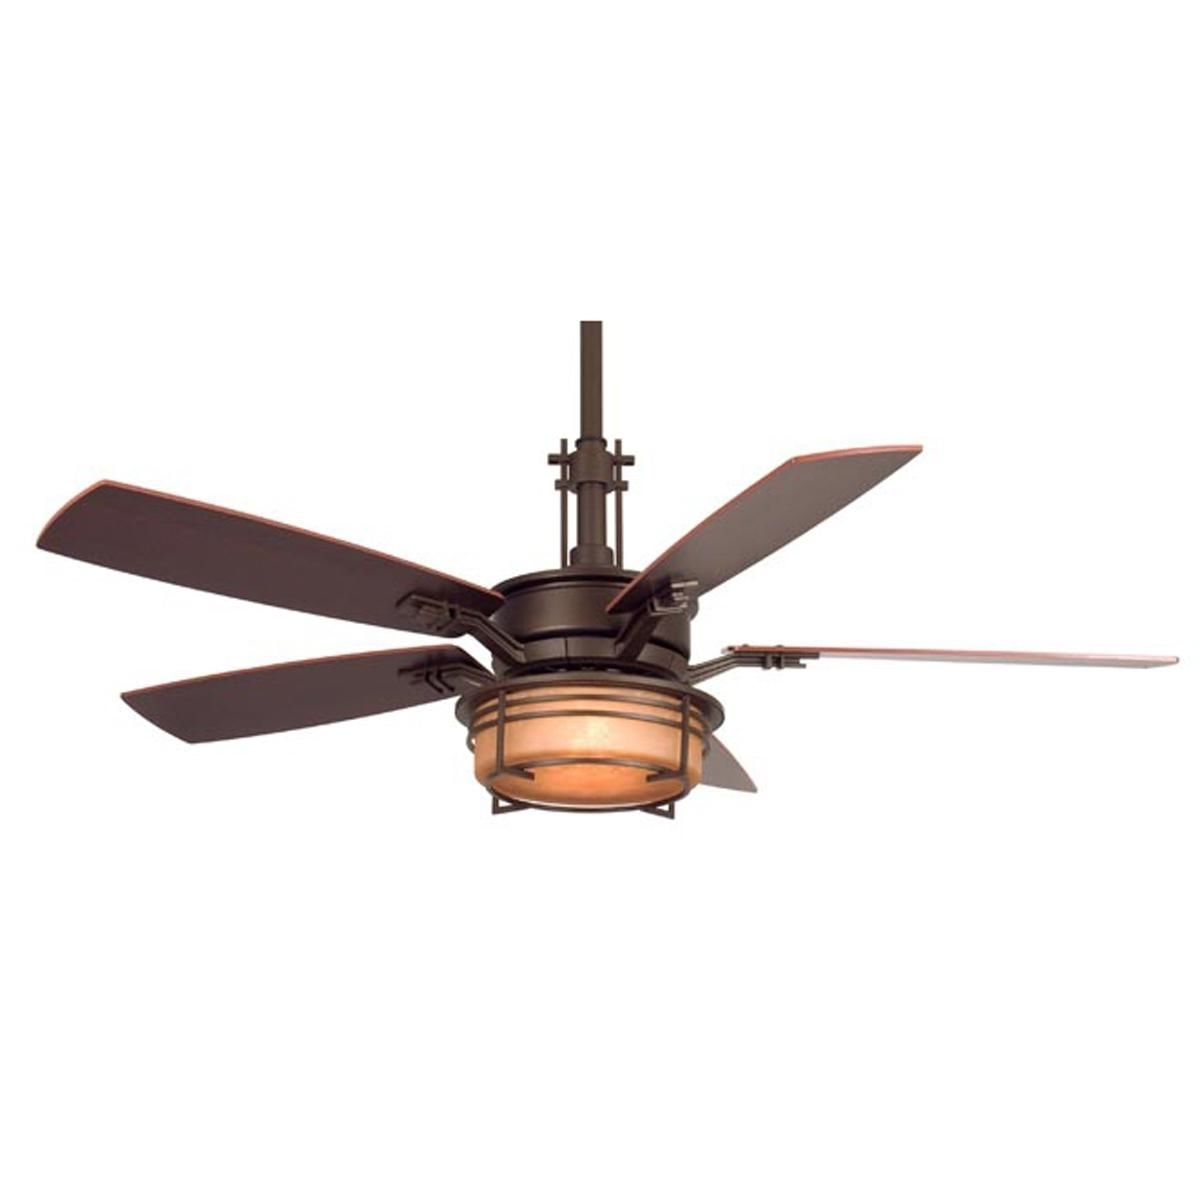 "Widely Used Gold Coast Outdoor Ceiling Fans Pertaining To 54"" Craftsman Style Ceiling Fan The Craftsman Ceiling Fan Features (View 13 of 20)"